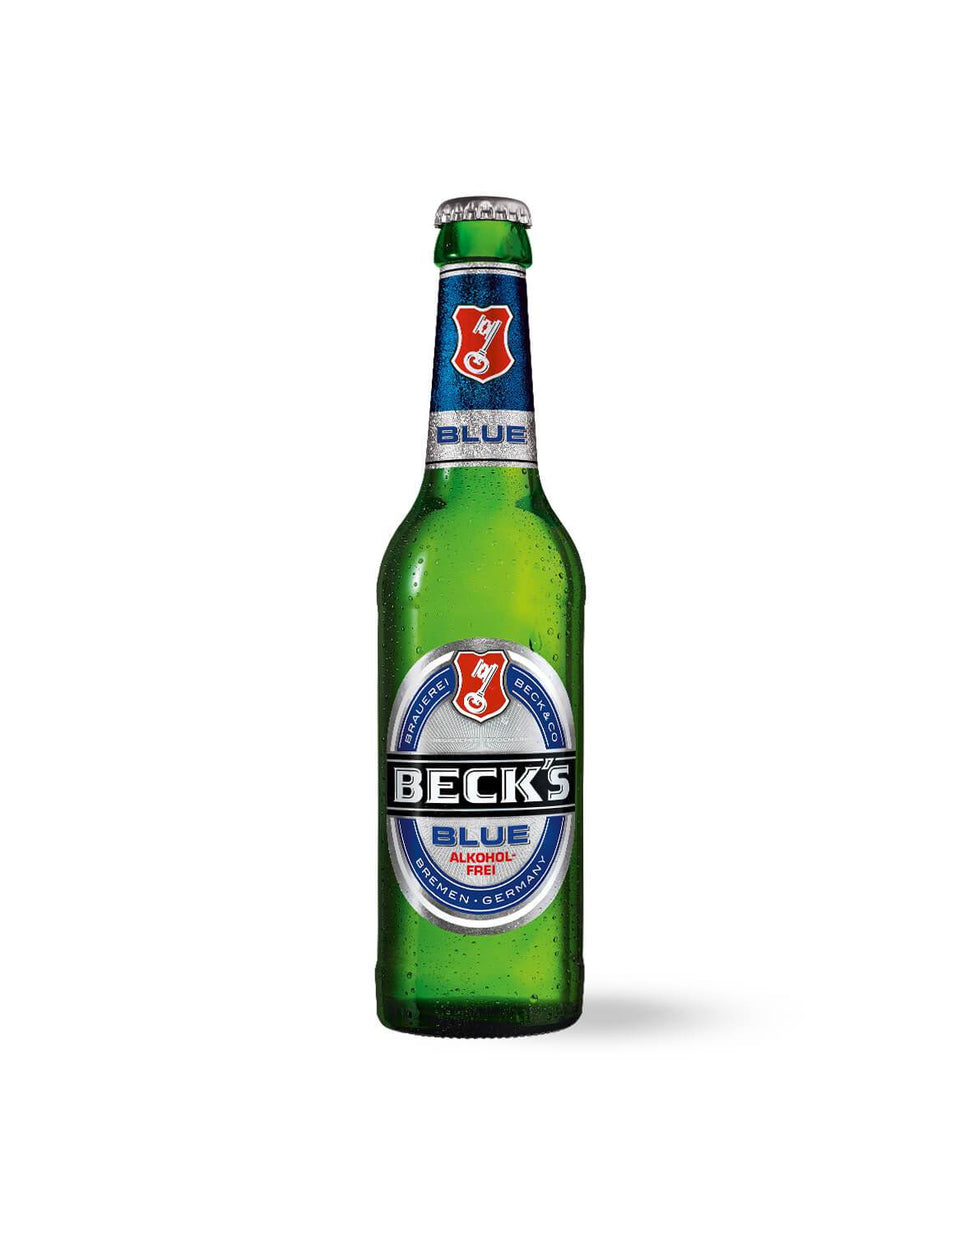 Becks Blue Alcohol-Free 330mL